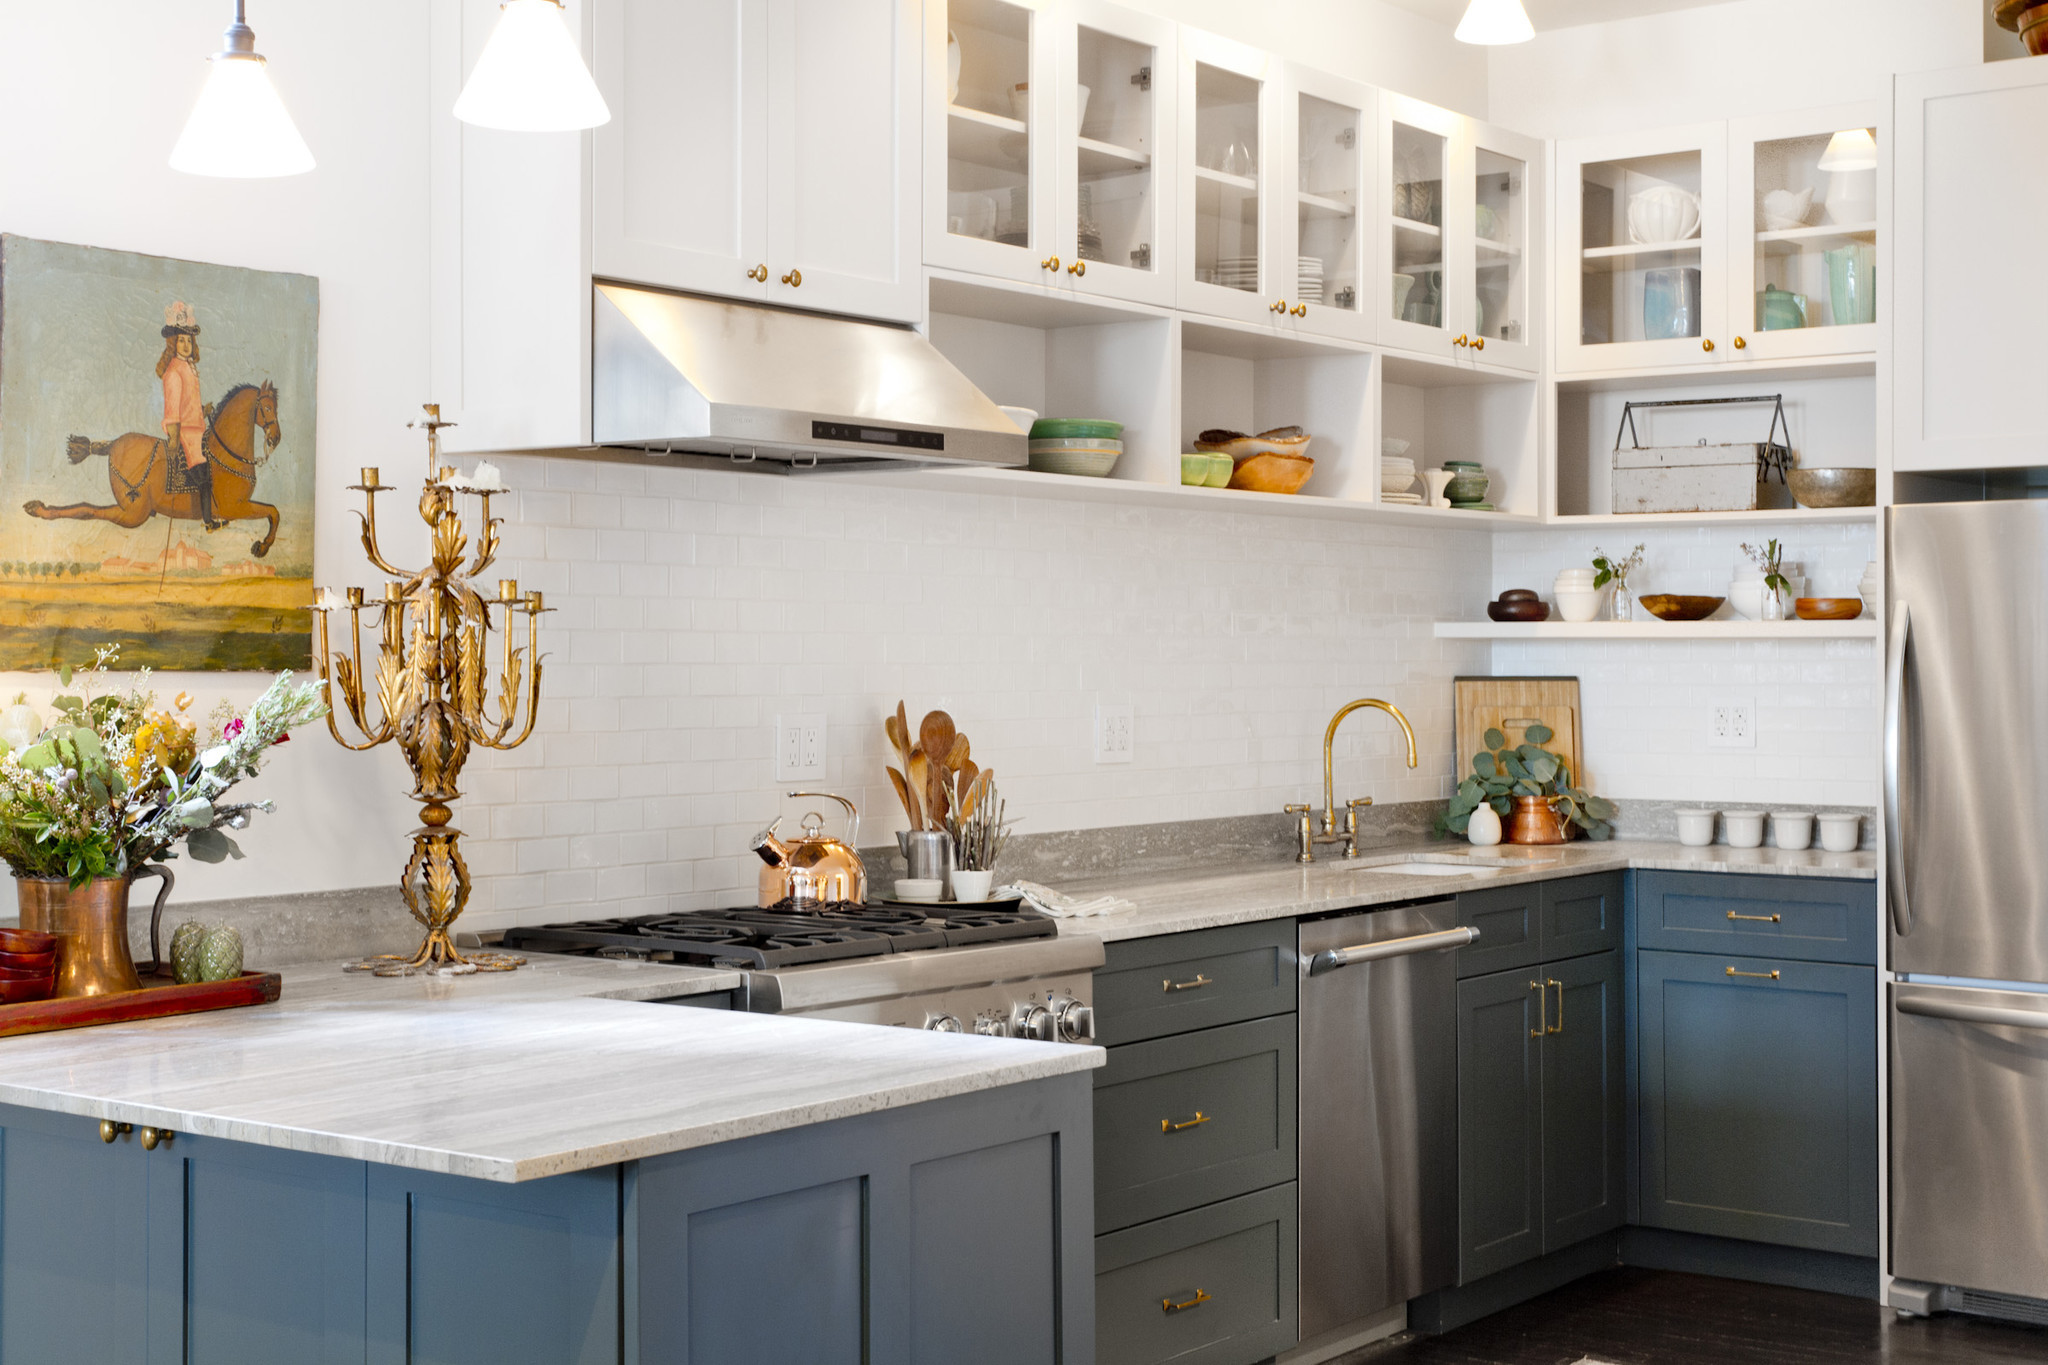 Kitchen Trends: Houzz reports themes for the kitchen will include mixed metal finishes, and increasi